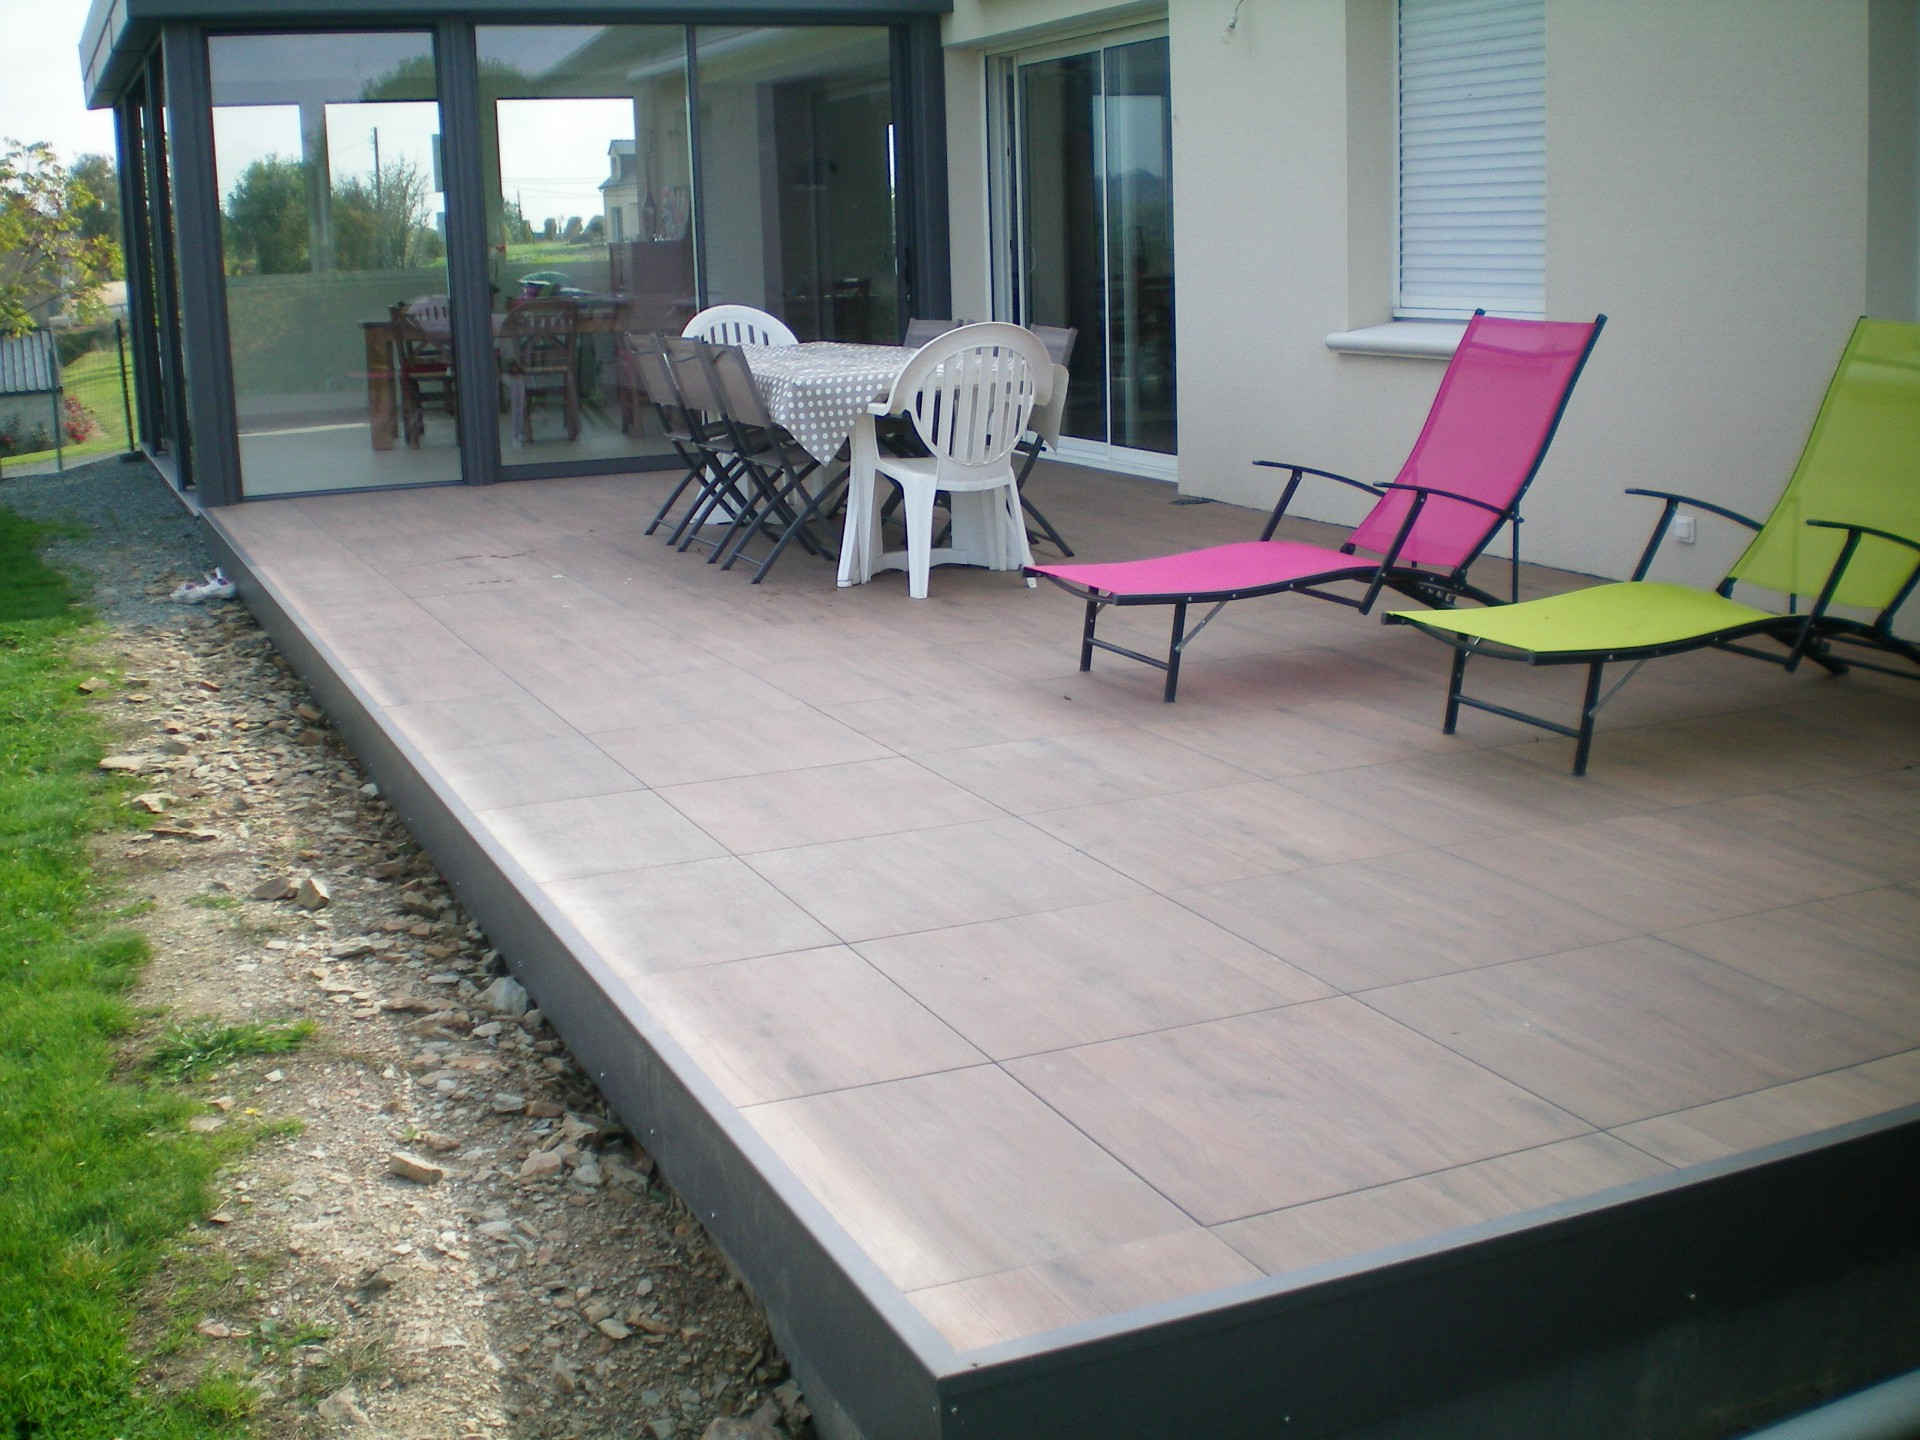 Carrelage design carrelage sur plot moderne design for Poser carrelage sur carrelage